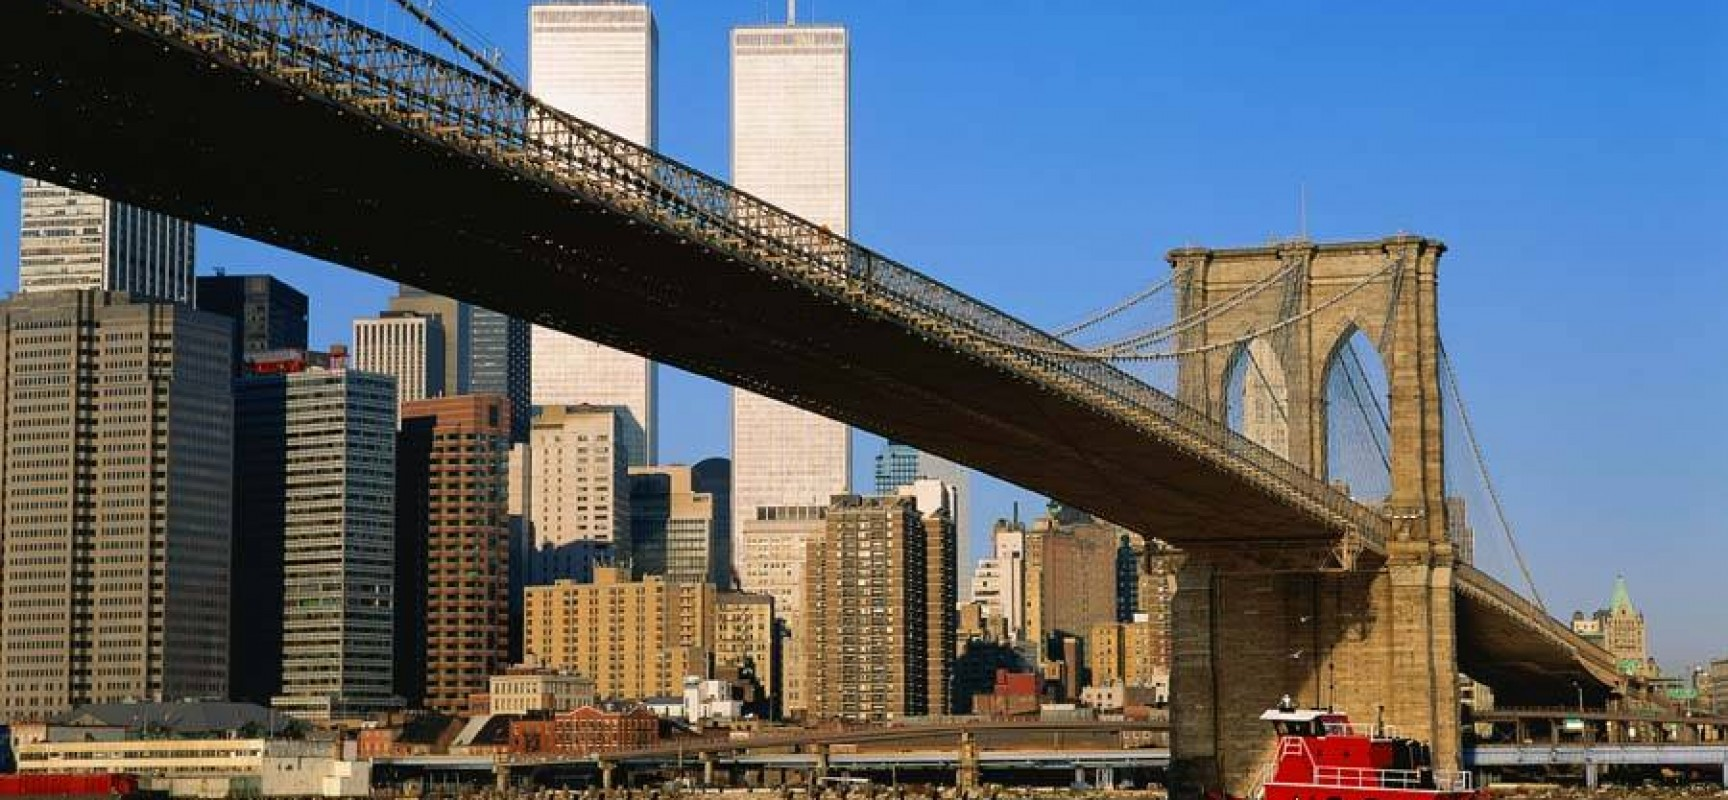 brooklyn bridge new york city usa travel featured. Black Bedroom Furniture Sets. Home Design Ideas